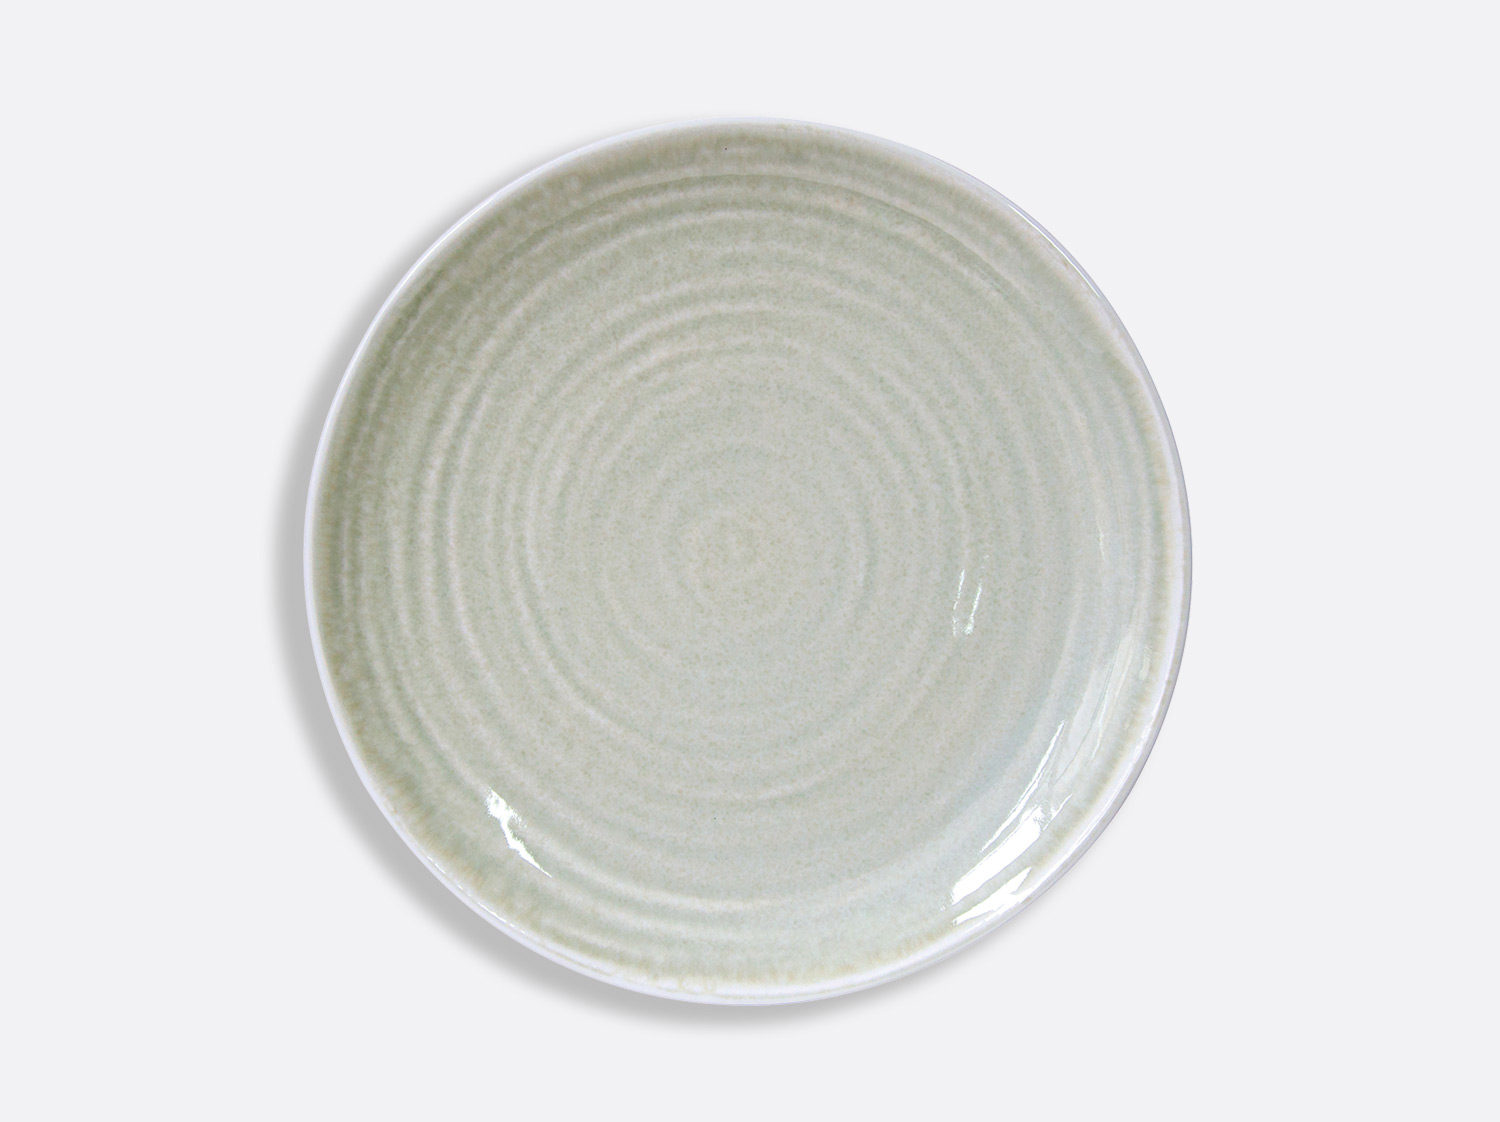 China Celadon service plate 12'' of the collection Celadon | Bernardaud